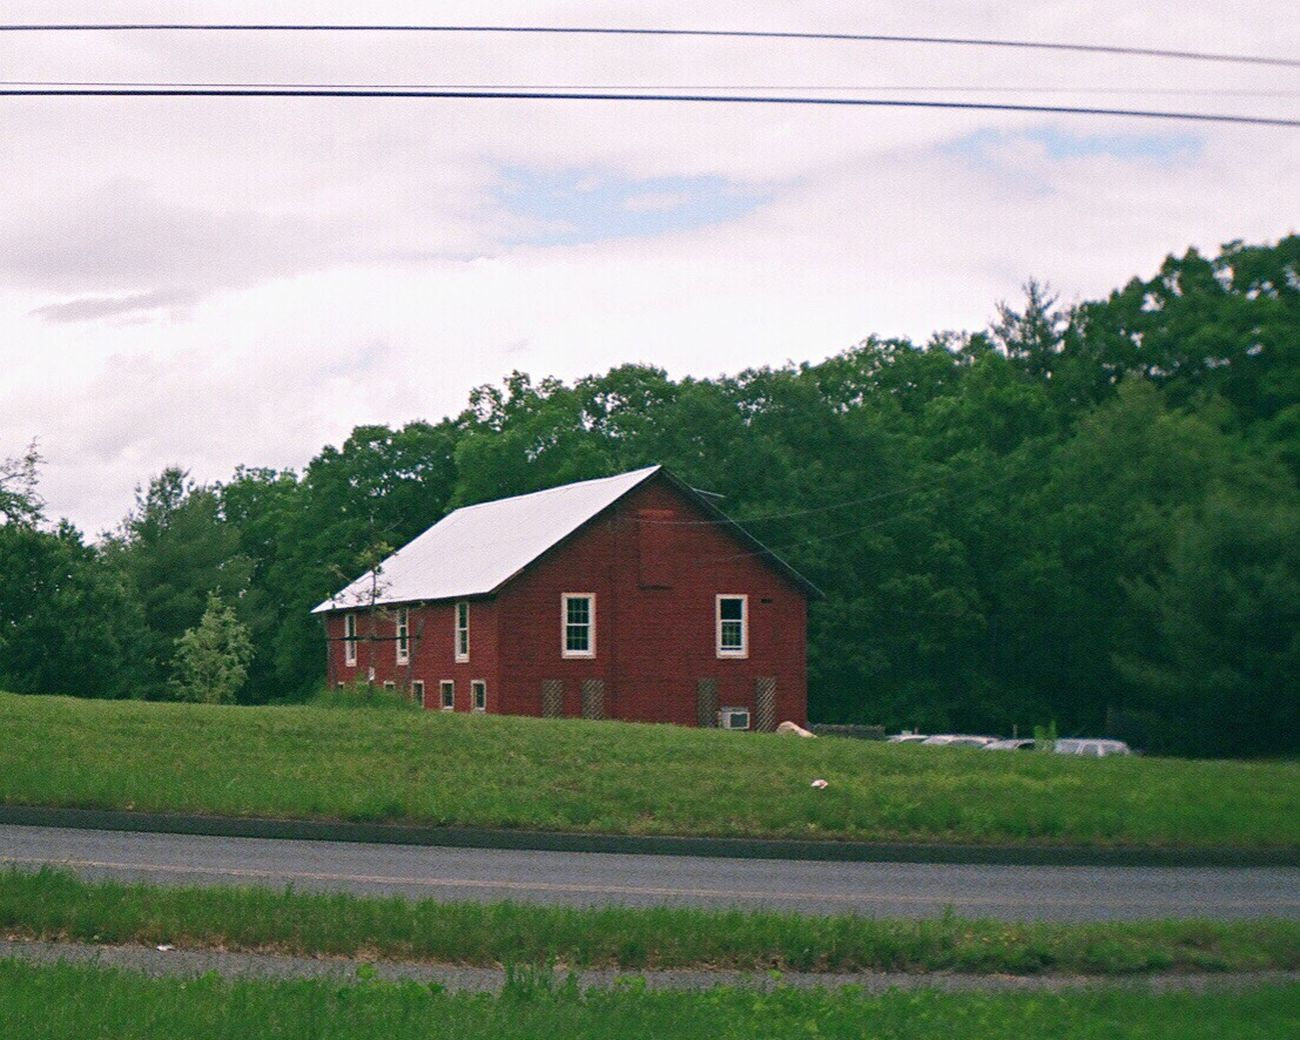 Building Exterior Cloud - Sky Country House Country Life Grass Film Sprocket Rocket Panorama Farmhouse Barn Koduckgirl